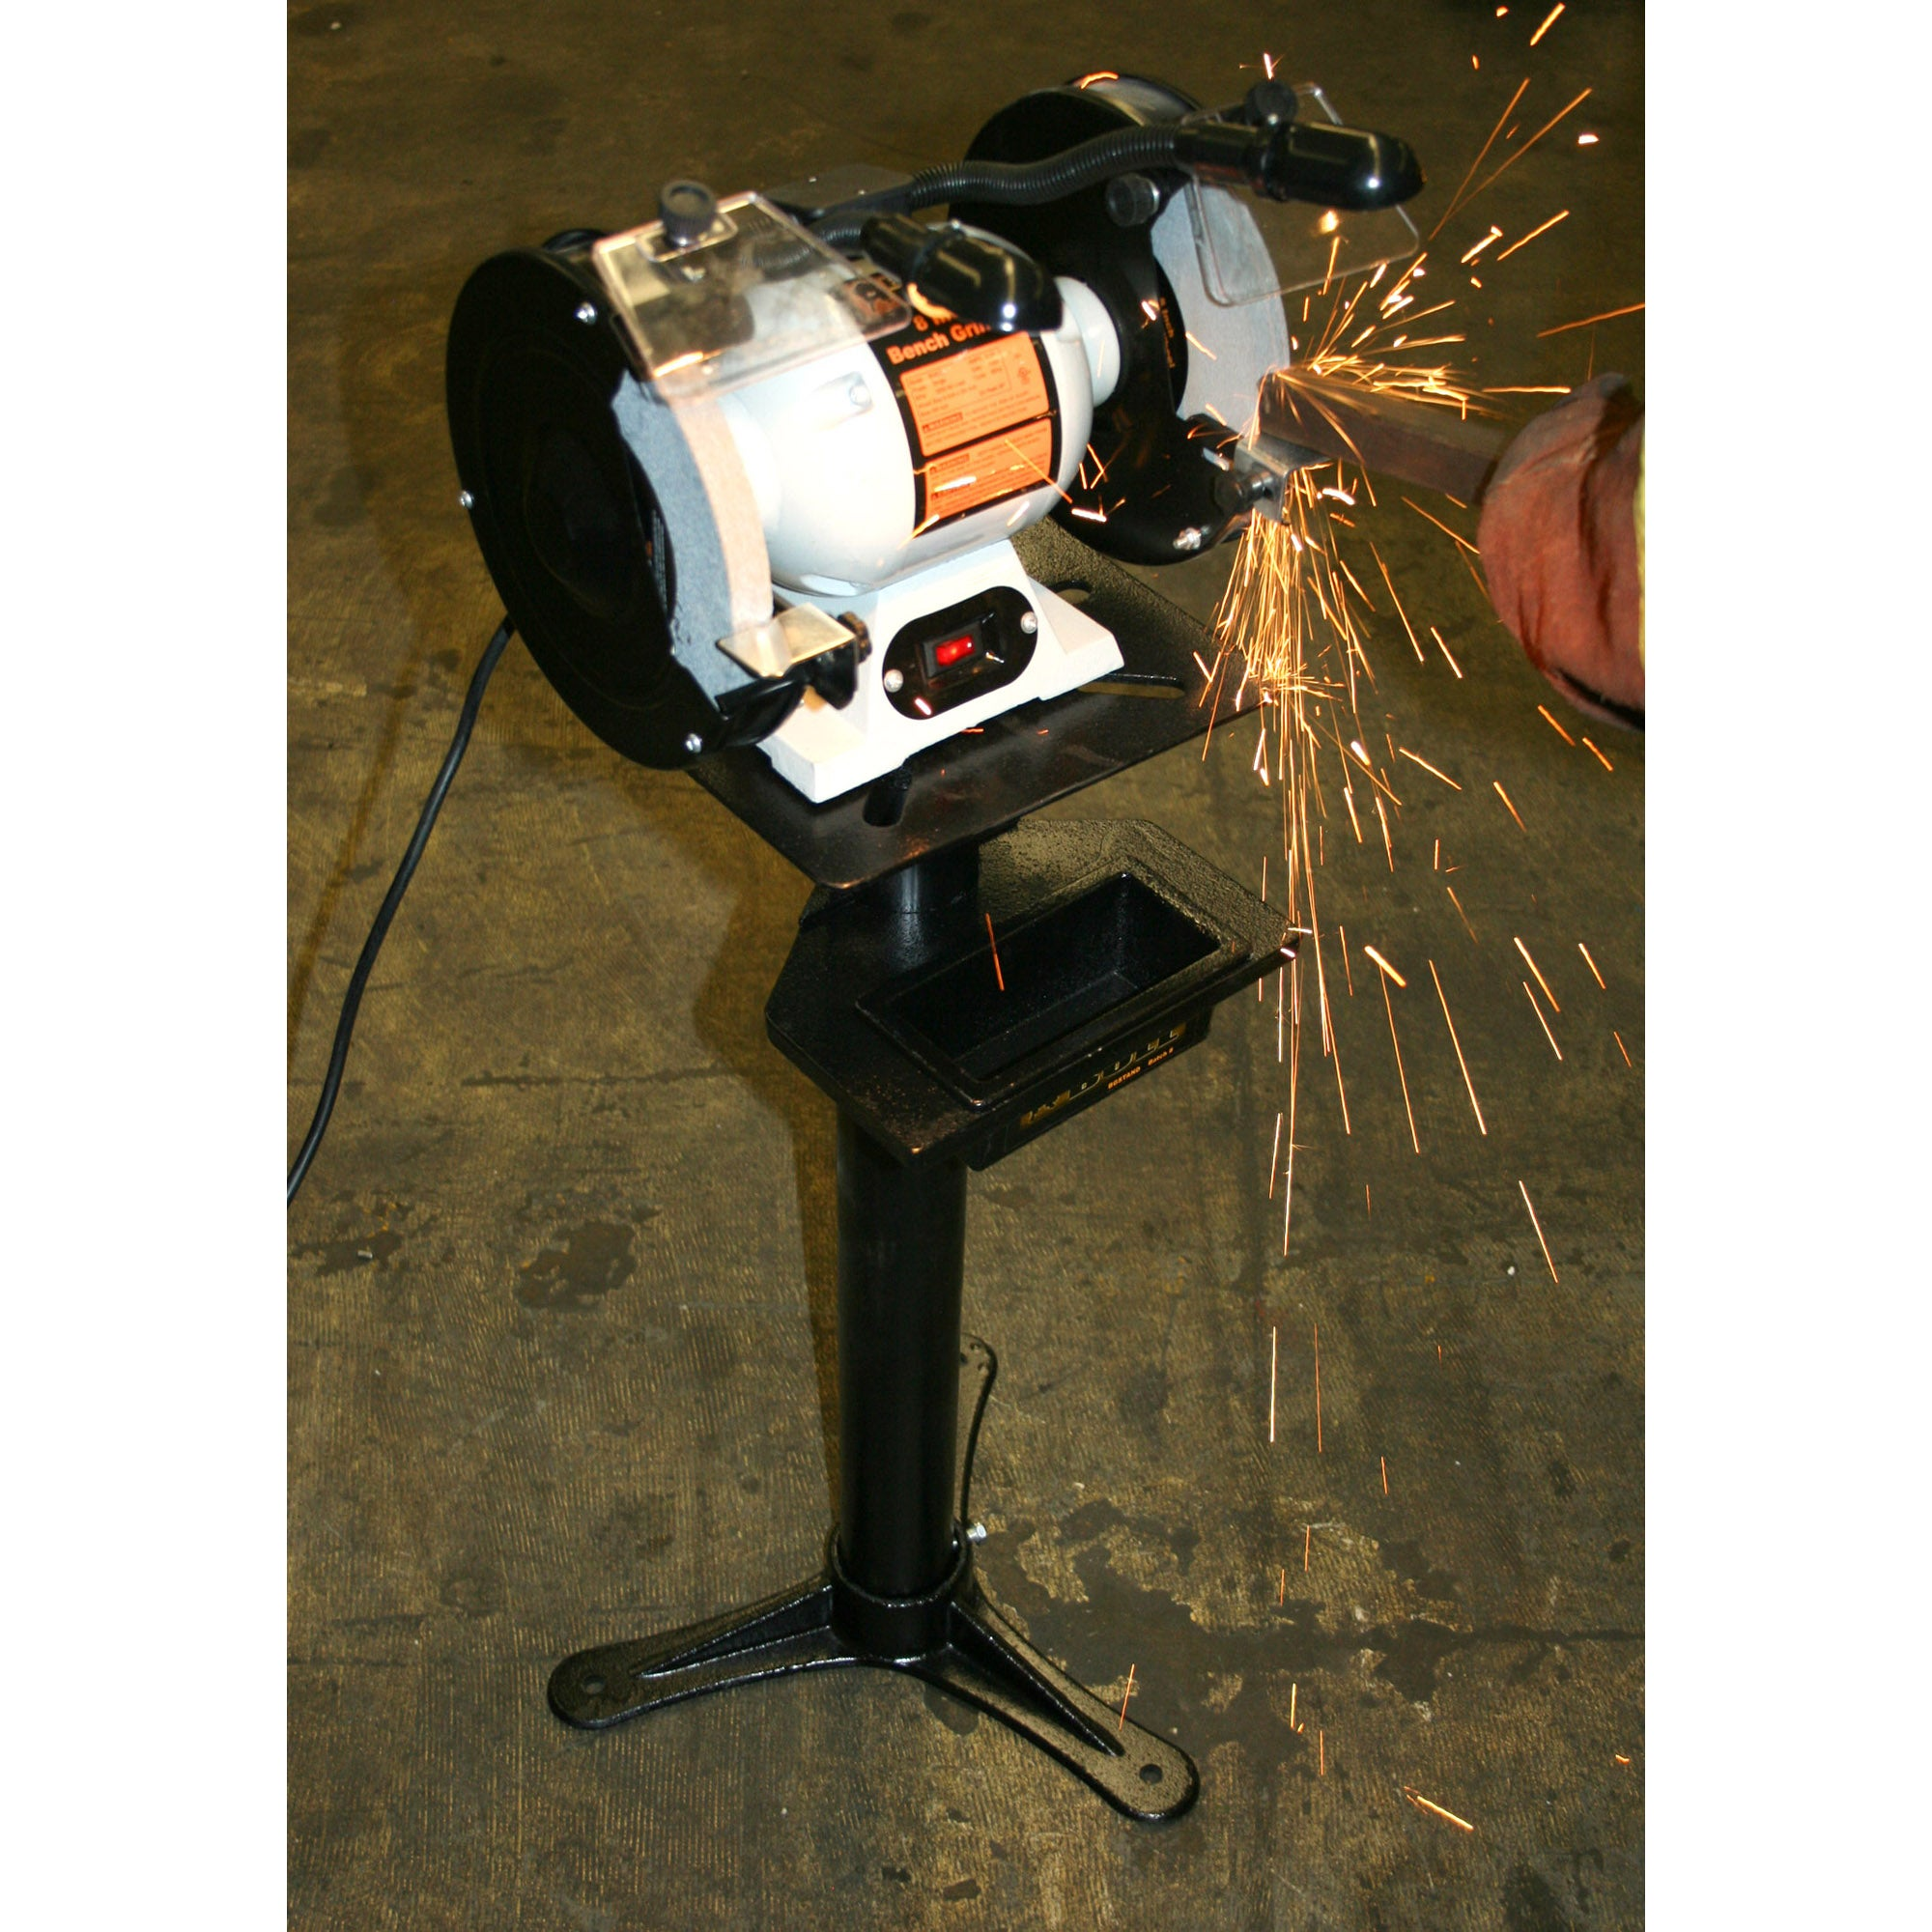 Shop Black Bull 8 Inch Bench Grinder With Lights Free Shipping Wiring Diagram Today 5129335